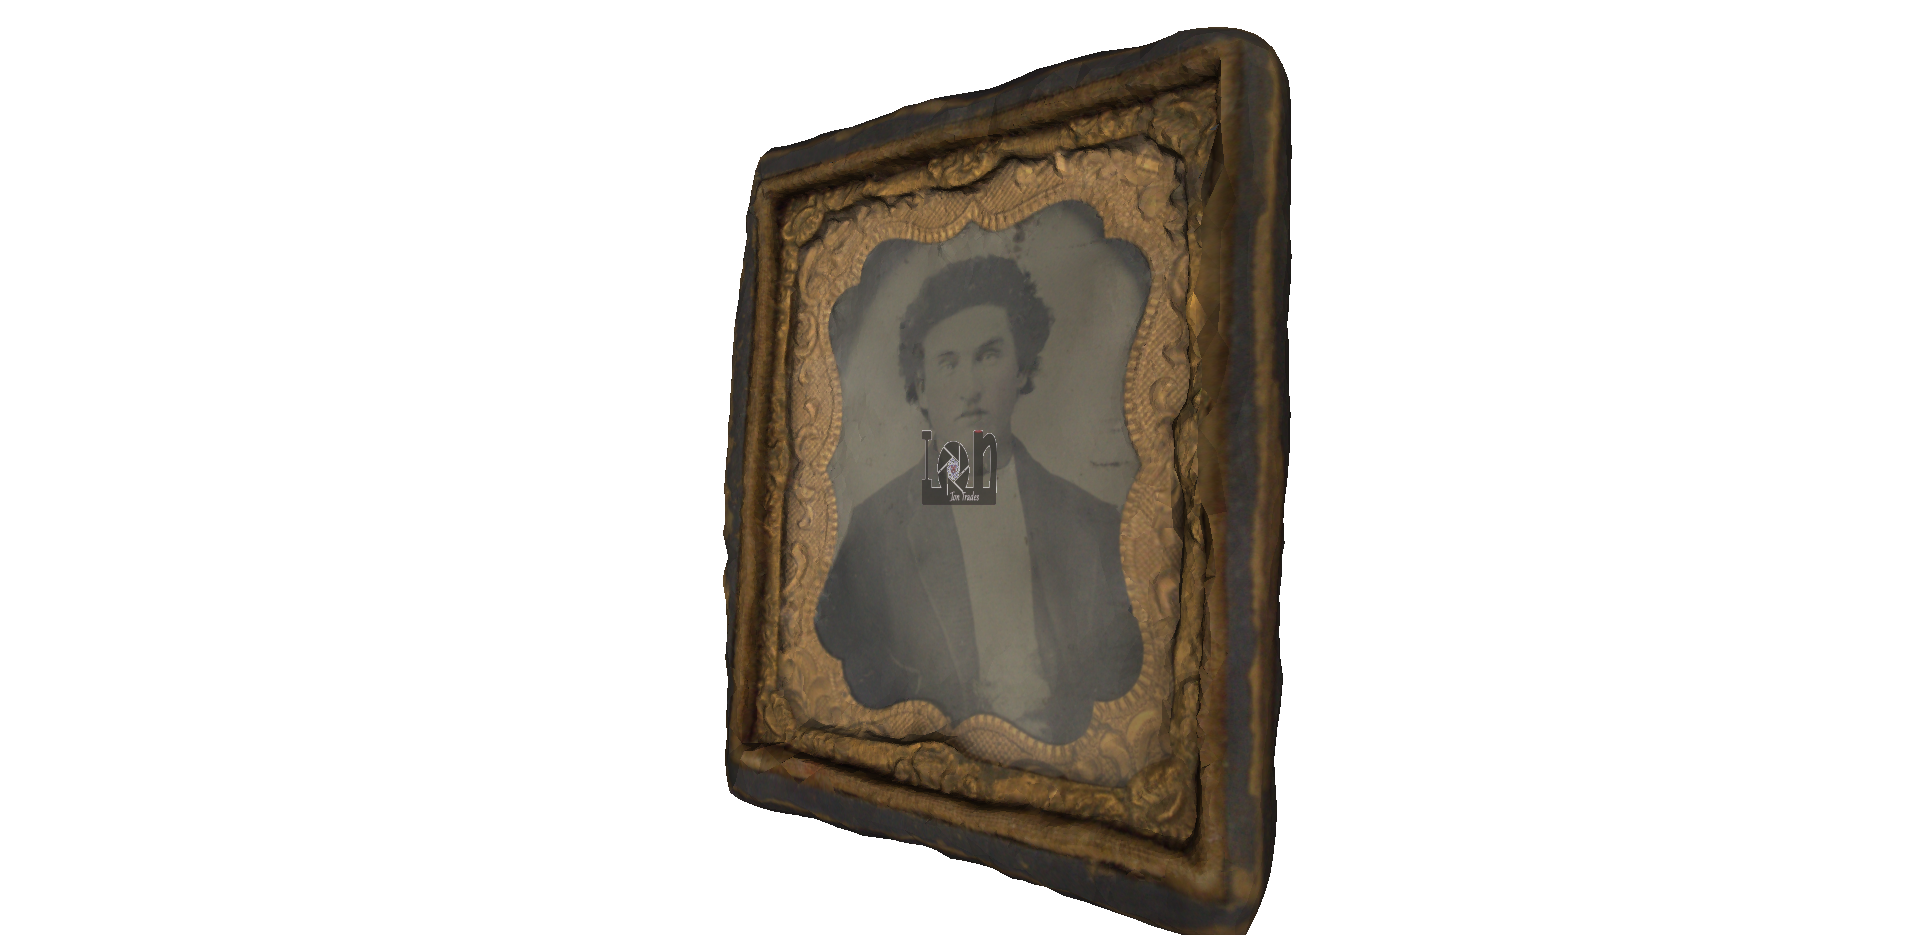 Ambrotype Photograph Antique Picture Frame 3D Model from 3D Scan